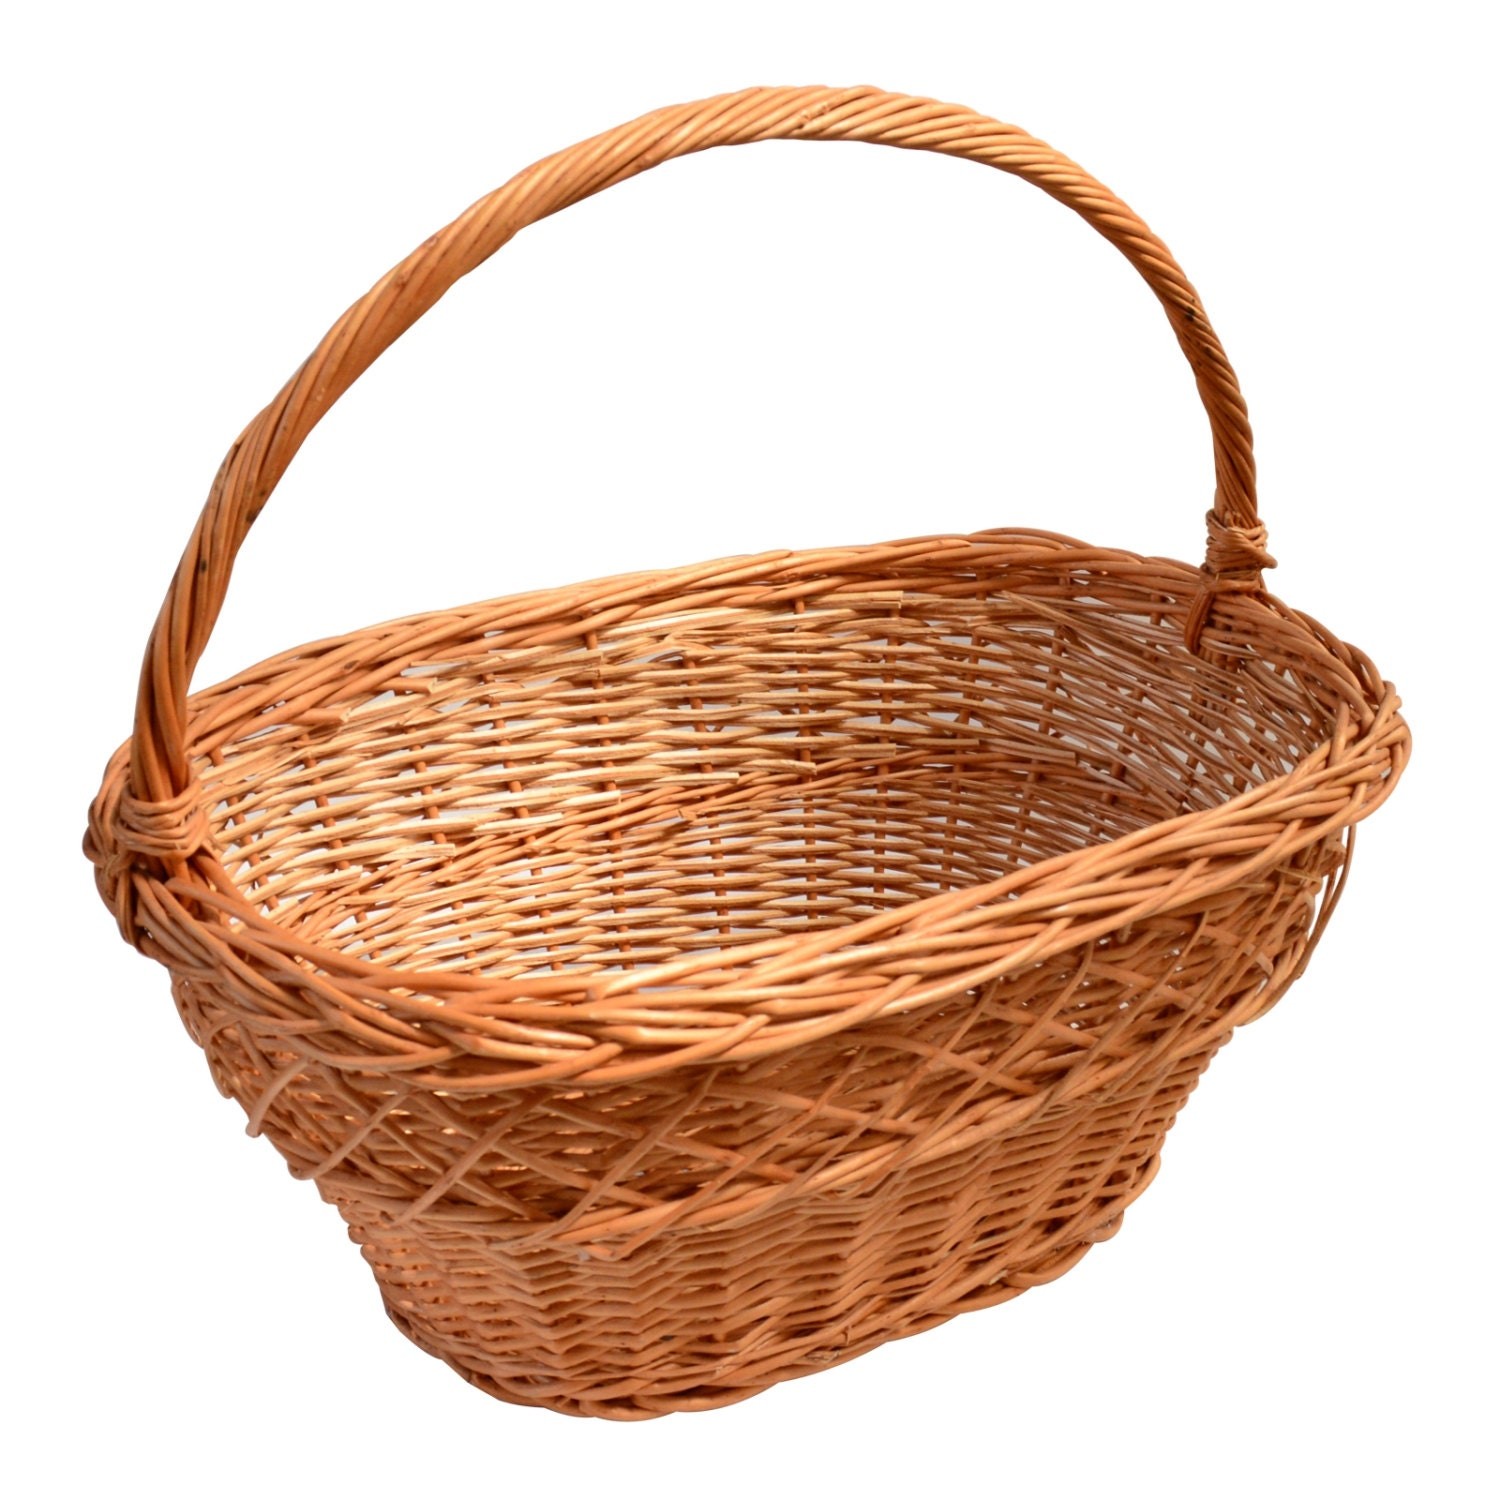 Large Willow Wicker Basket Laundry Hamper With By Handmadegroup